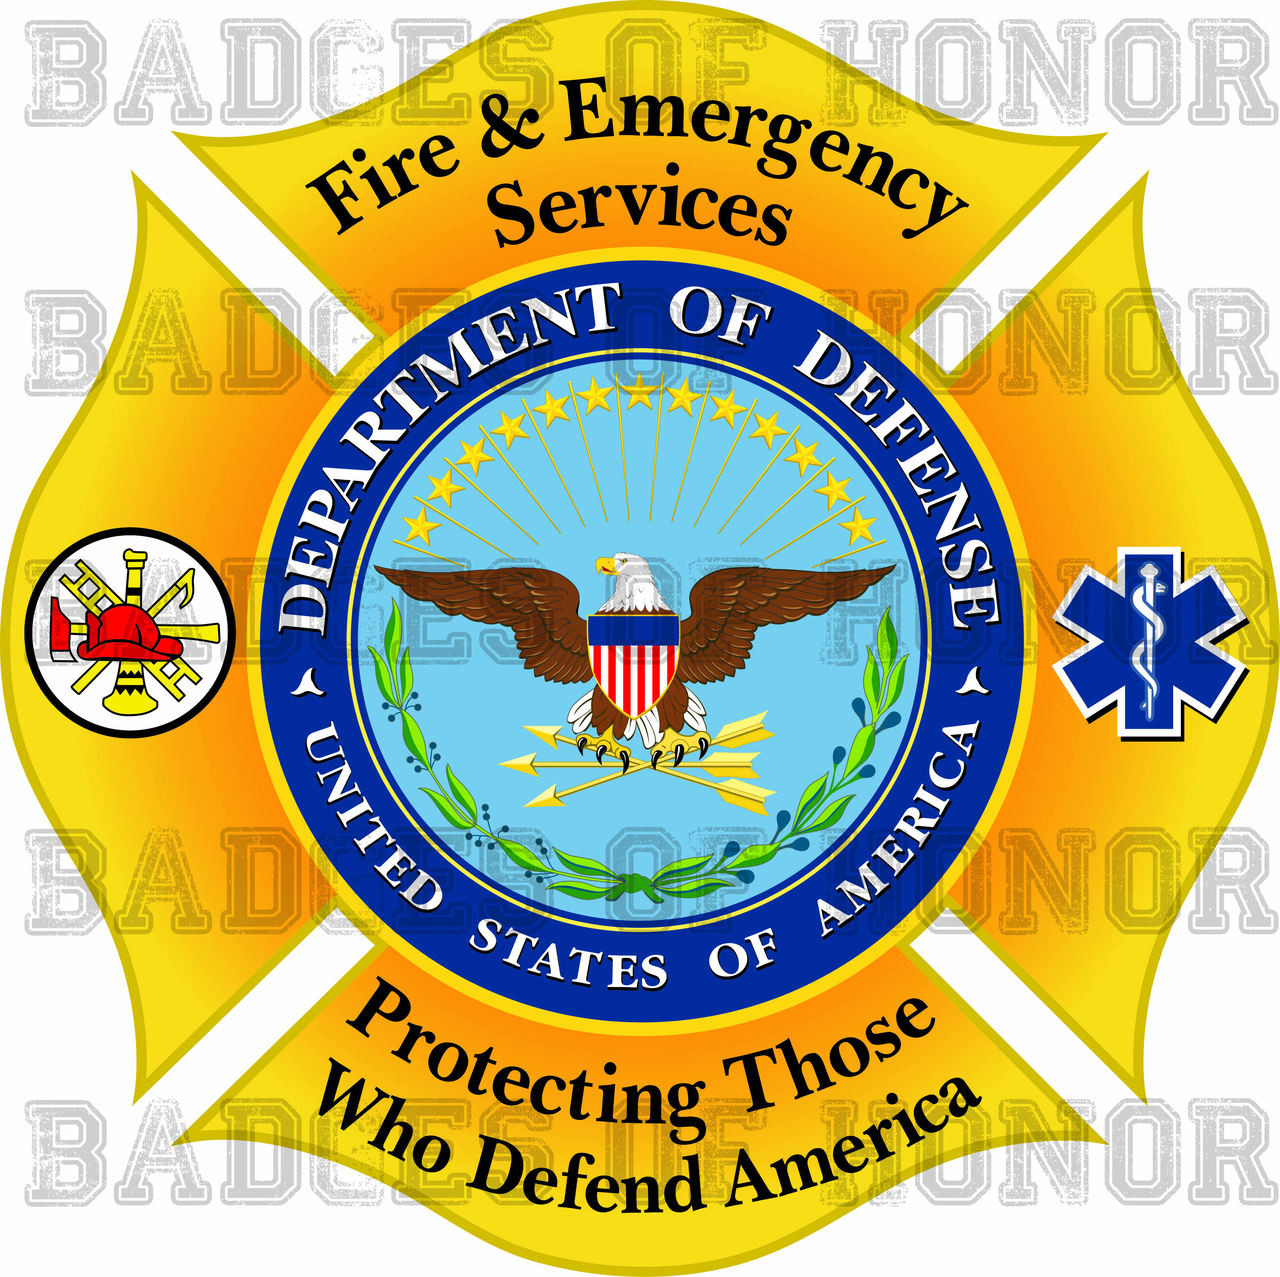 Dod Fire And Emergency Services Decal Badges Of Honor